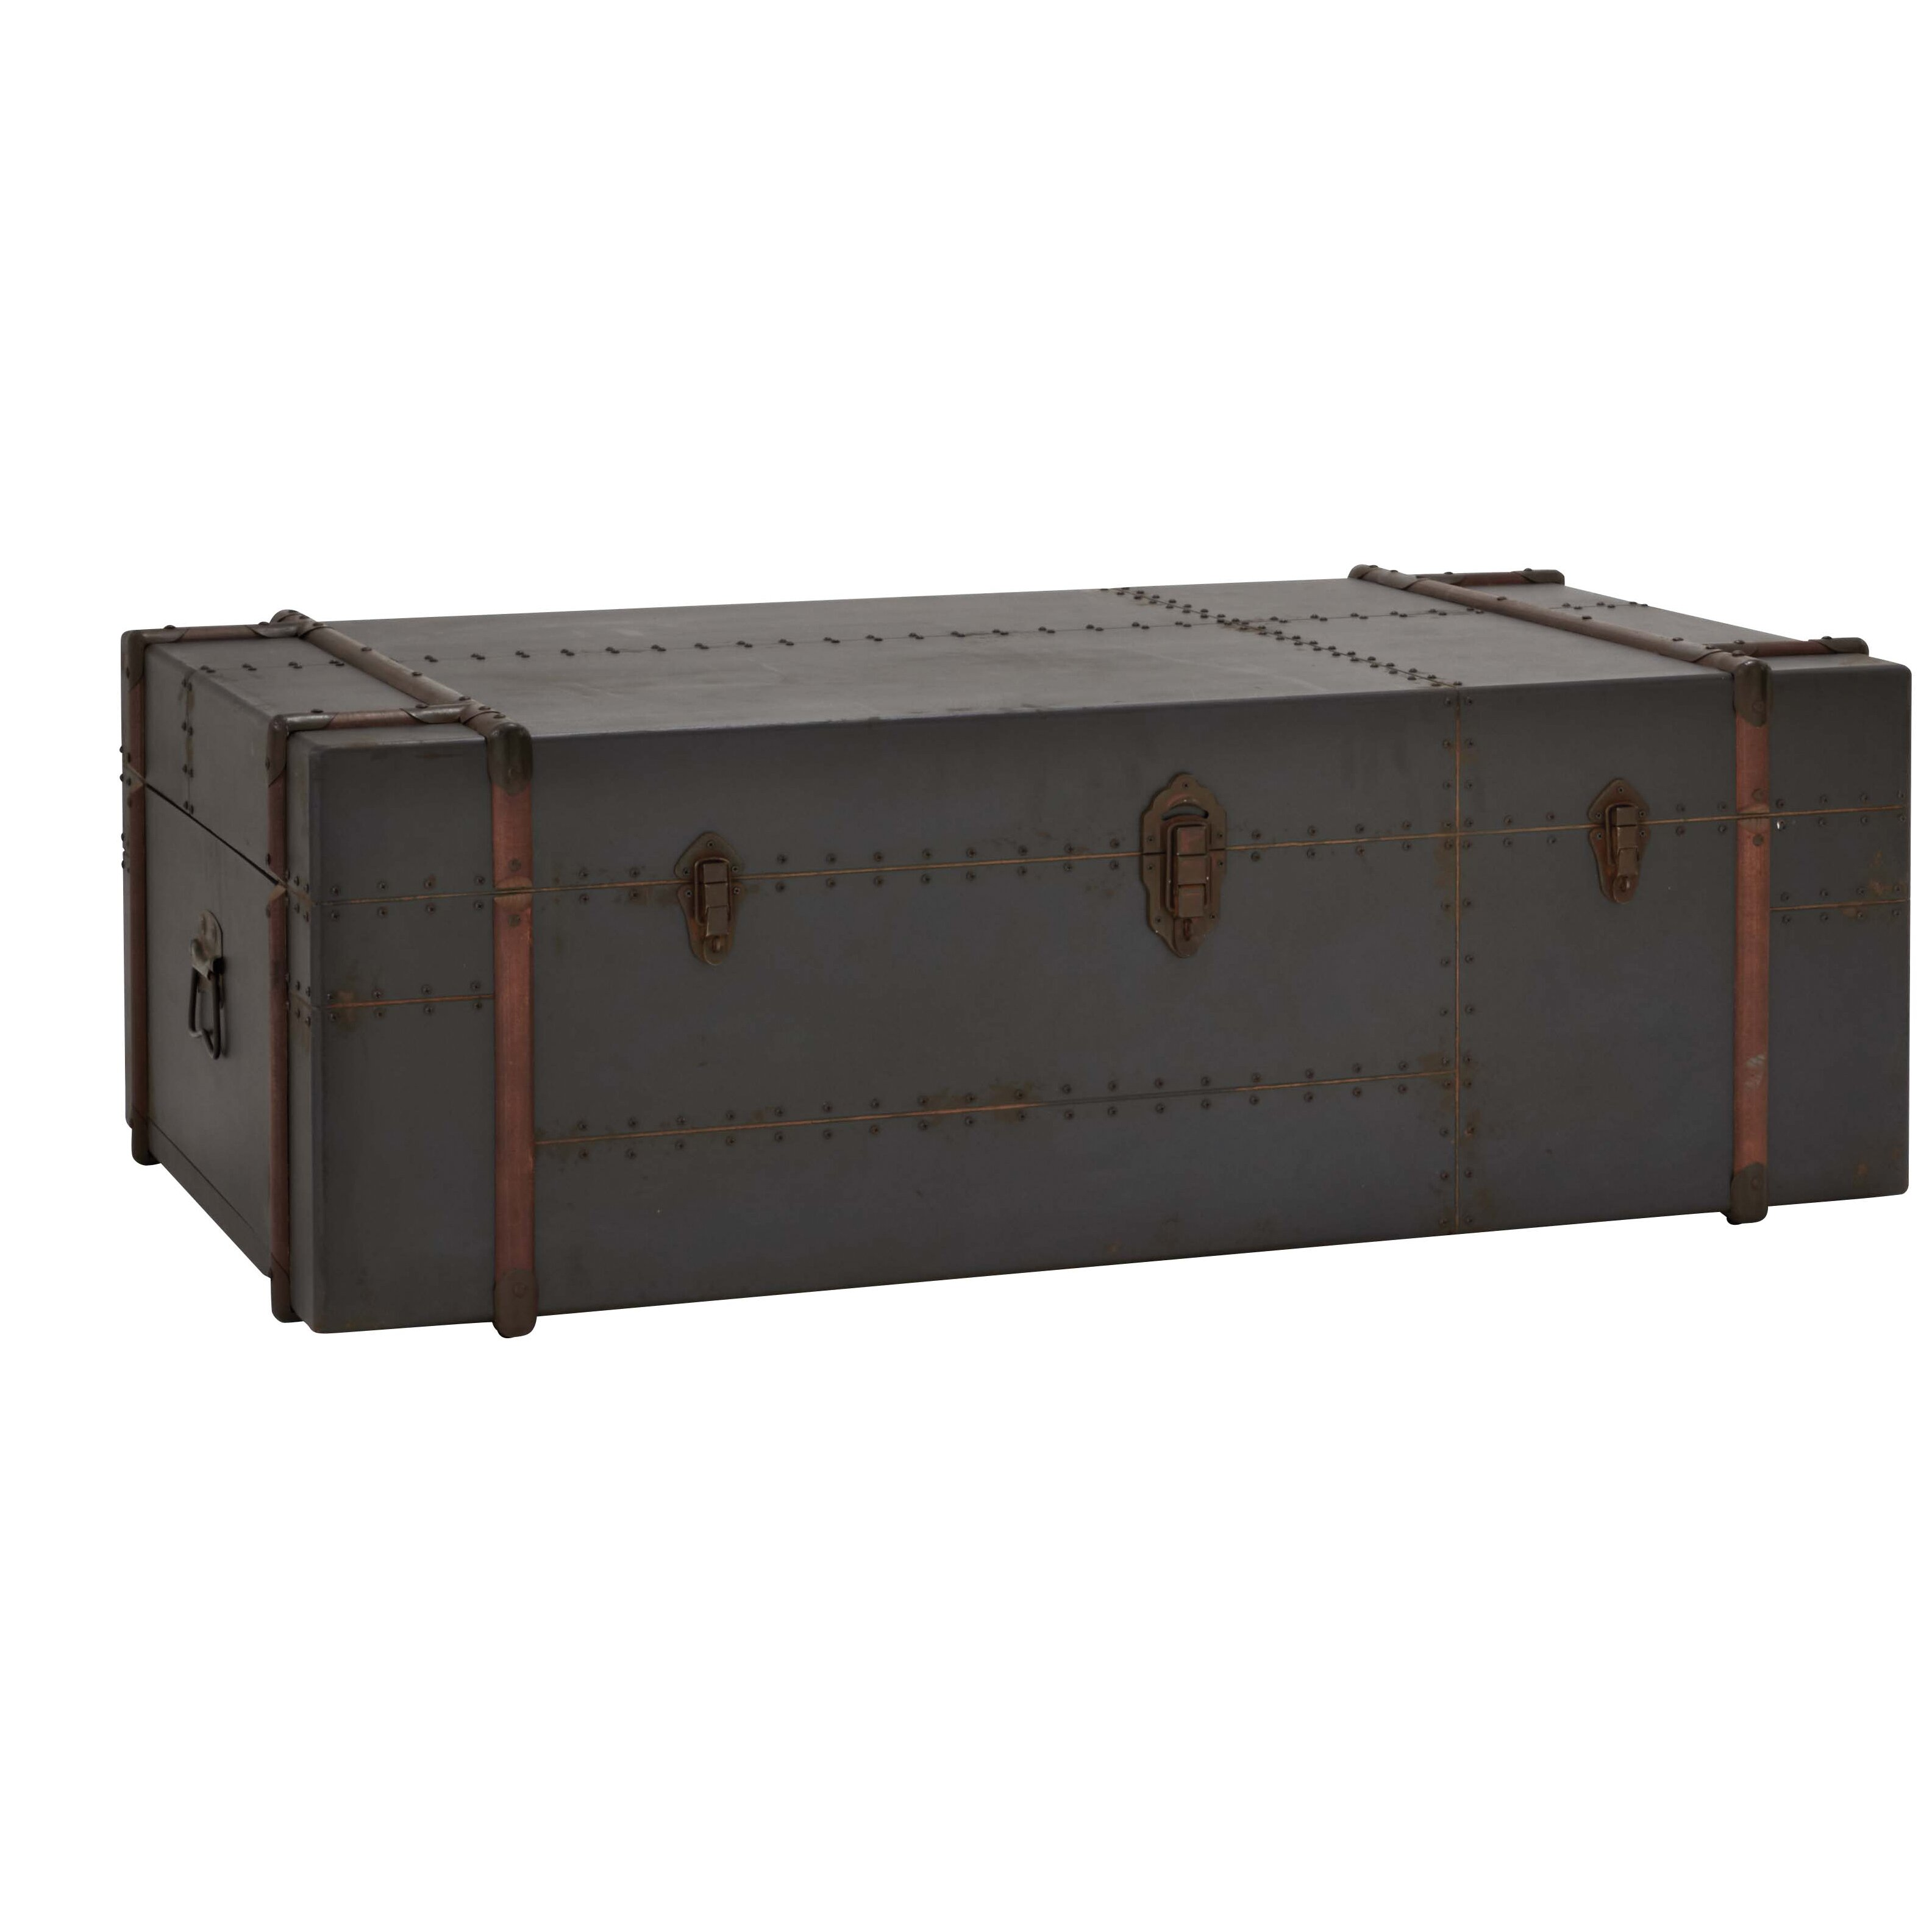 Black Steamer Trunk Coffee Table Woodland Imports Antique Trunk Coffee Table Reviews Wayfair